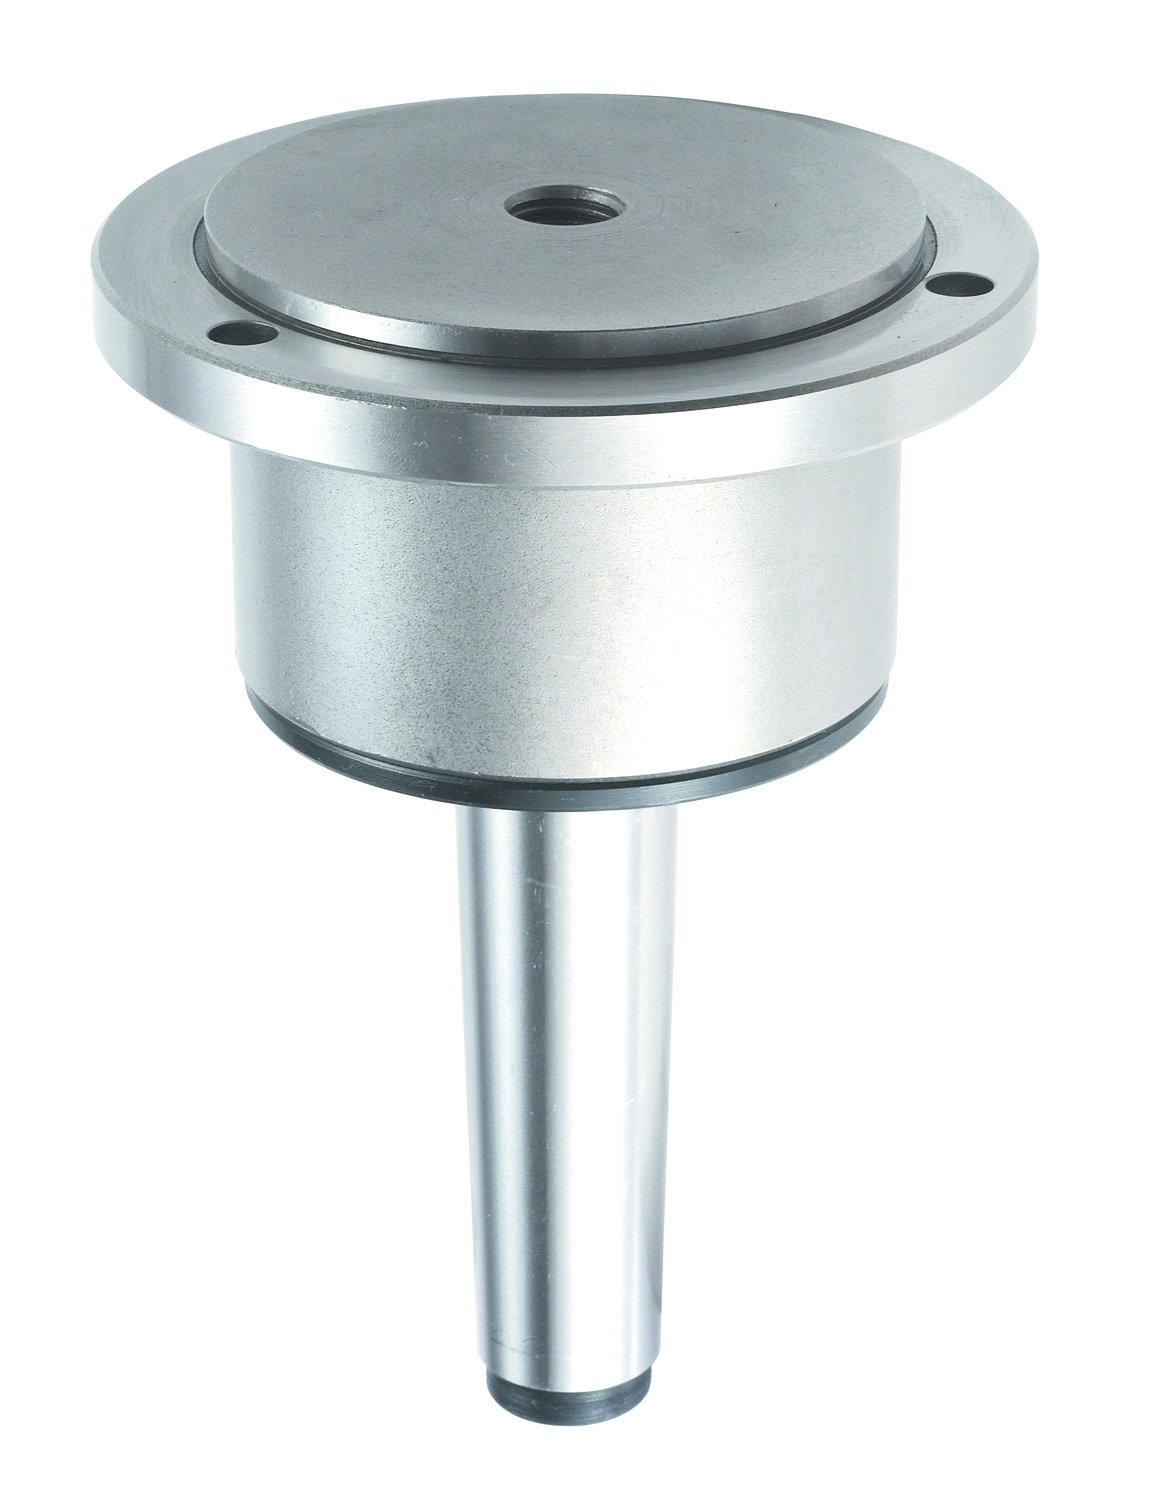 MT2 X 100MM TAPER SHANK CHUCK REVOLVING BED FOR 3'' CHUCKS (3900-6021) by HHIP